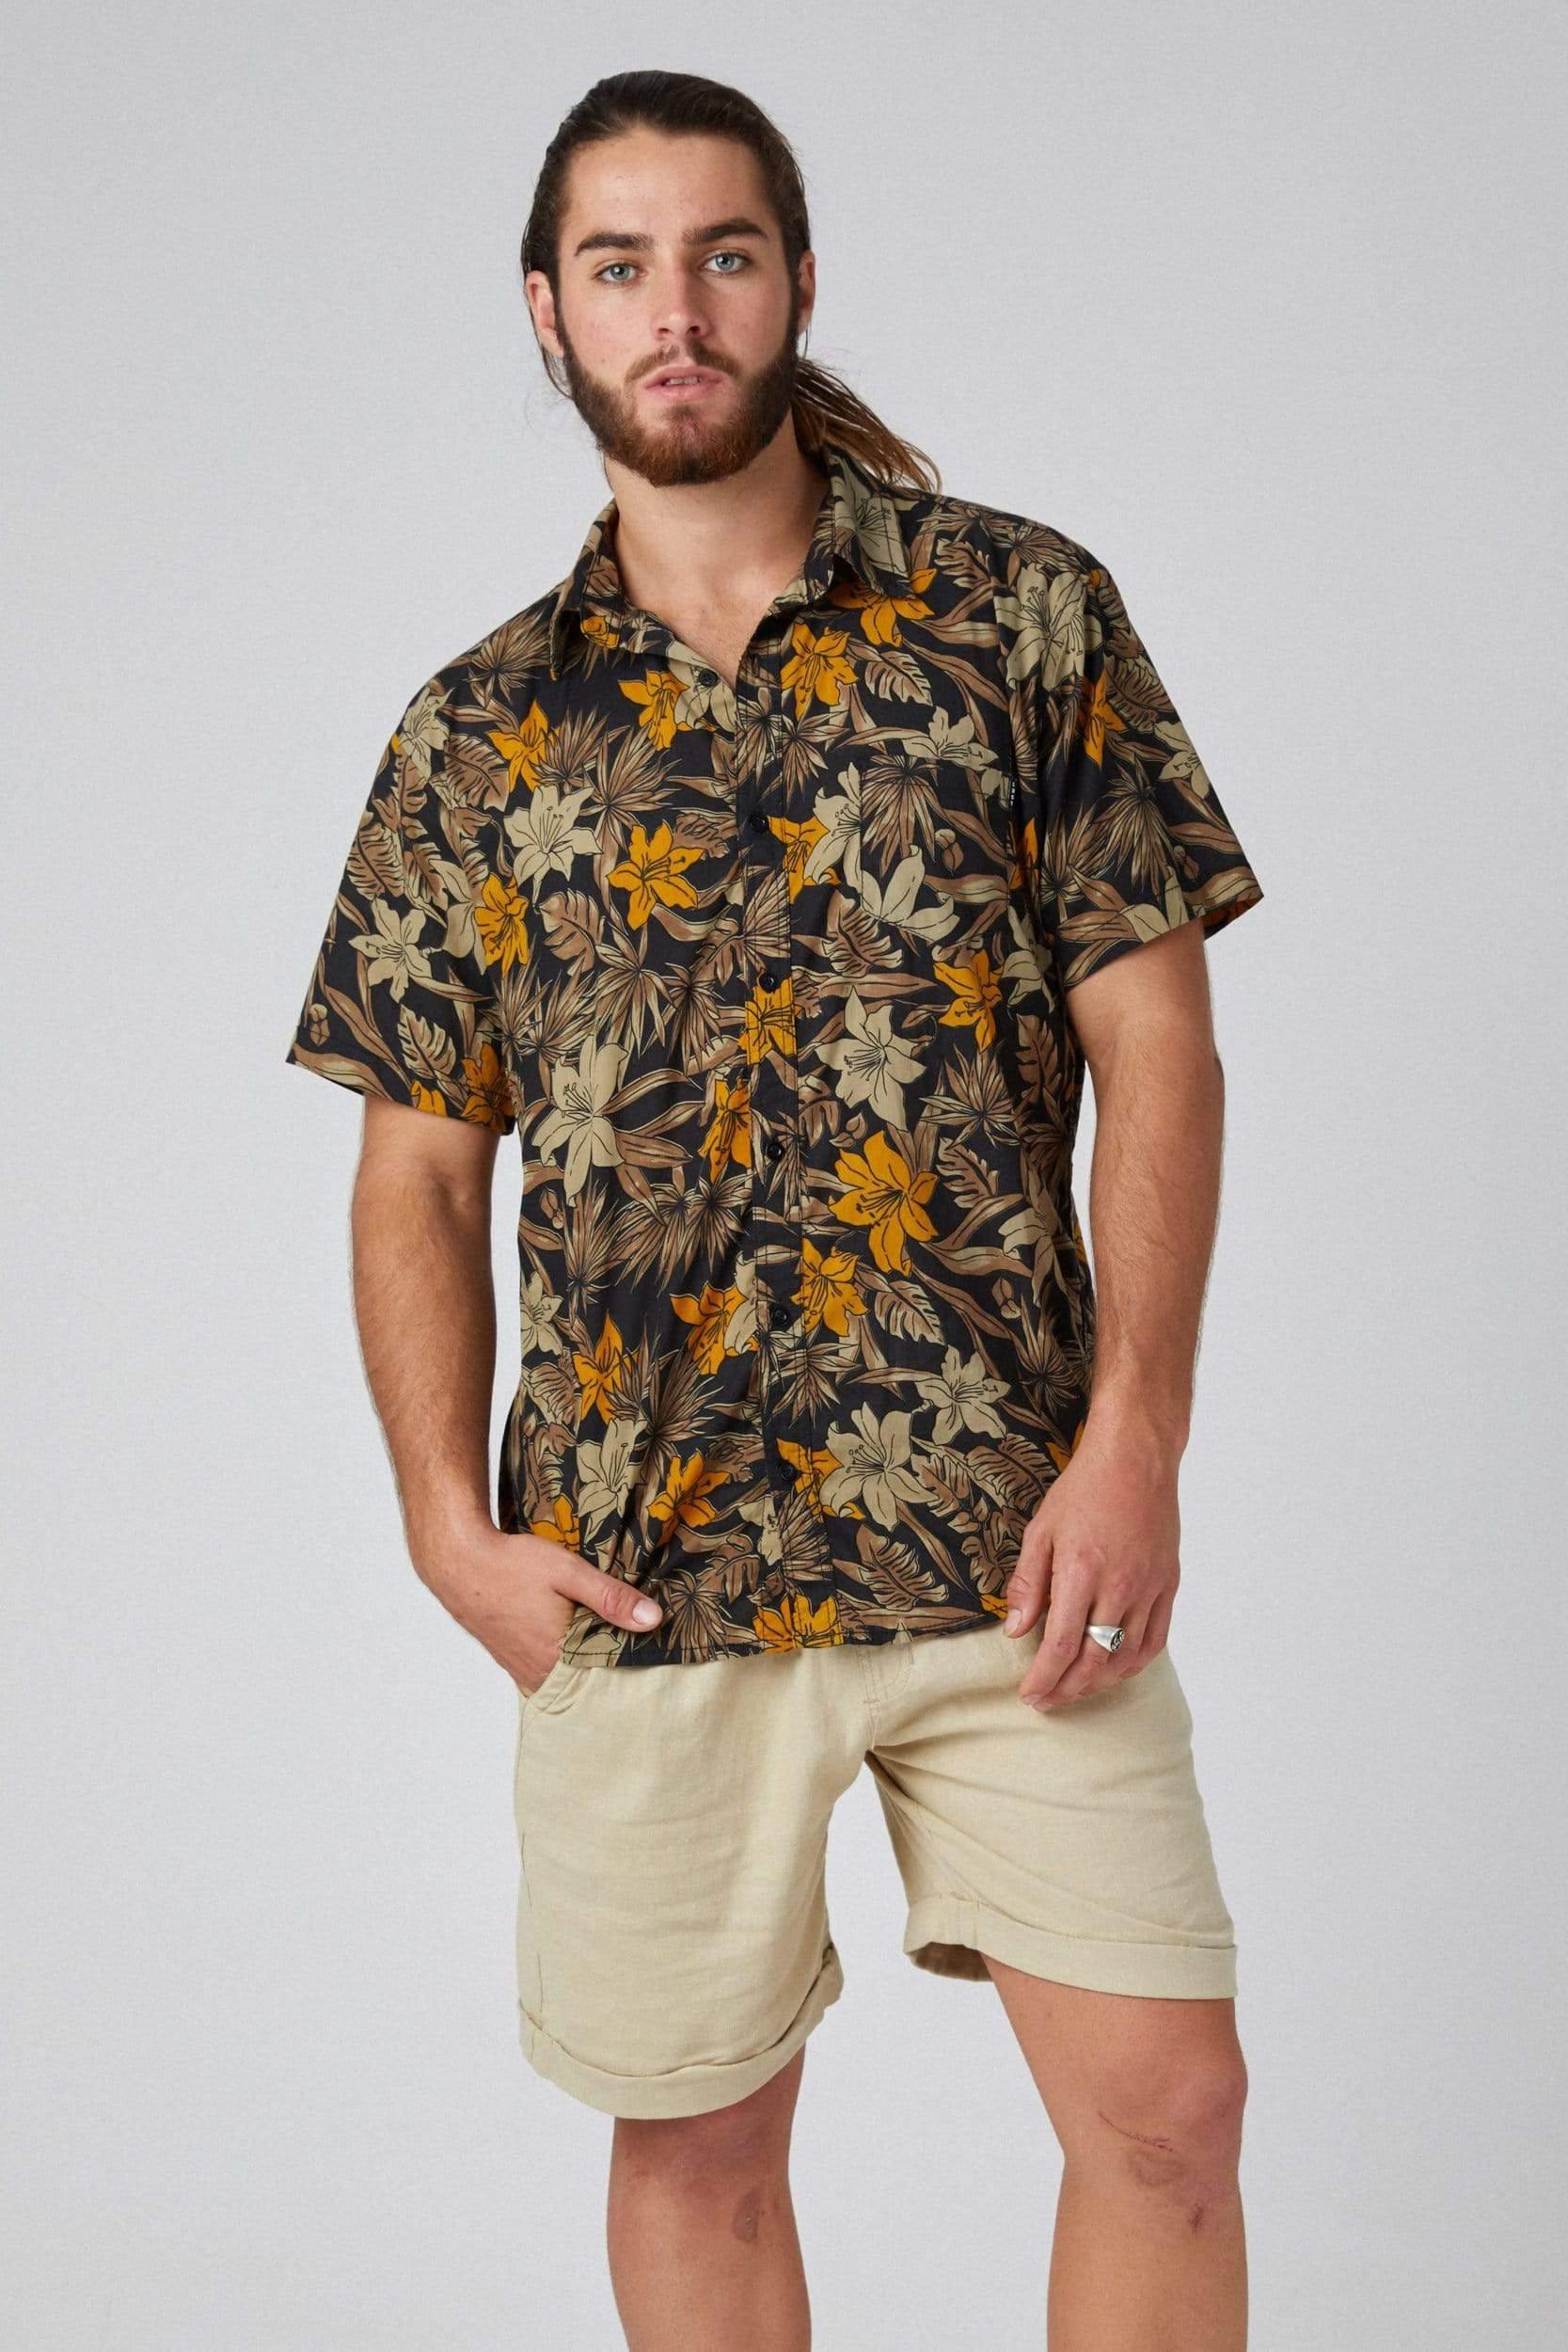 Abroha - Man Shirt - LOST IN PARADISE